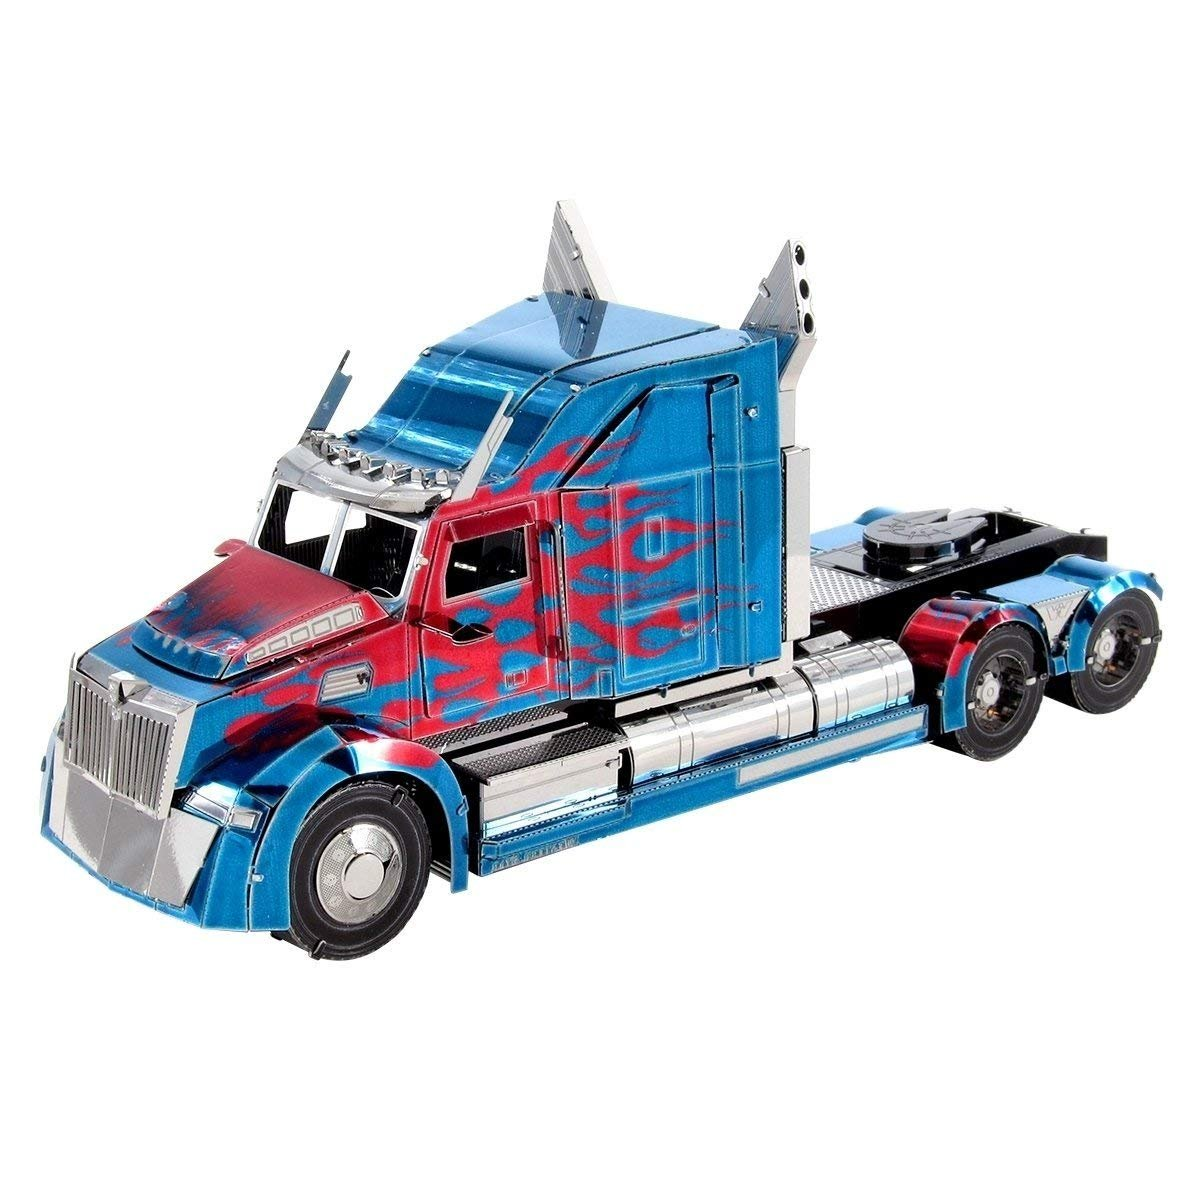 Metal Earth ICONX: Transformers Optimus Prime Western Star 5700 Truck